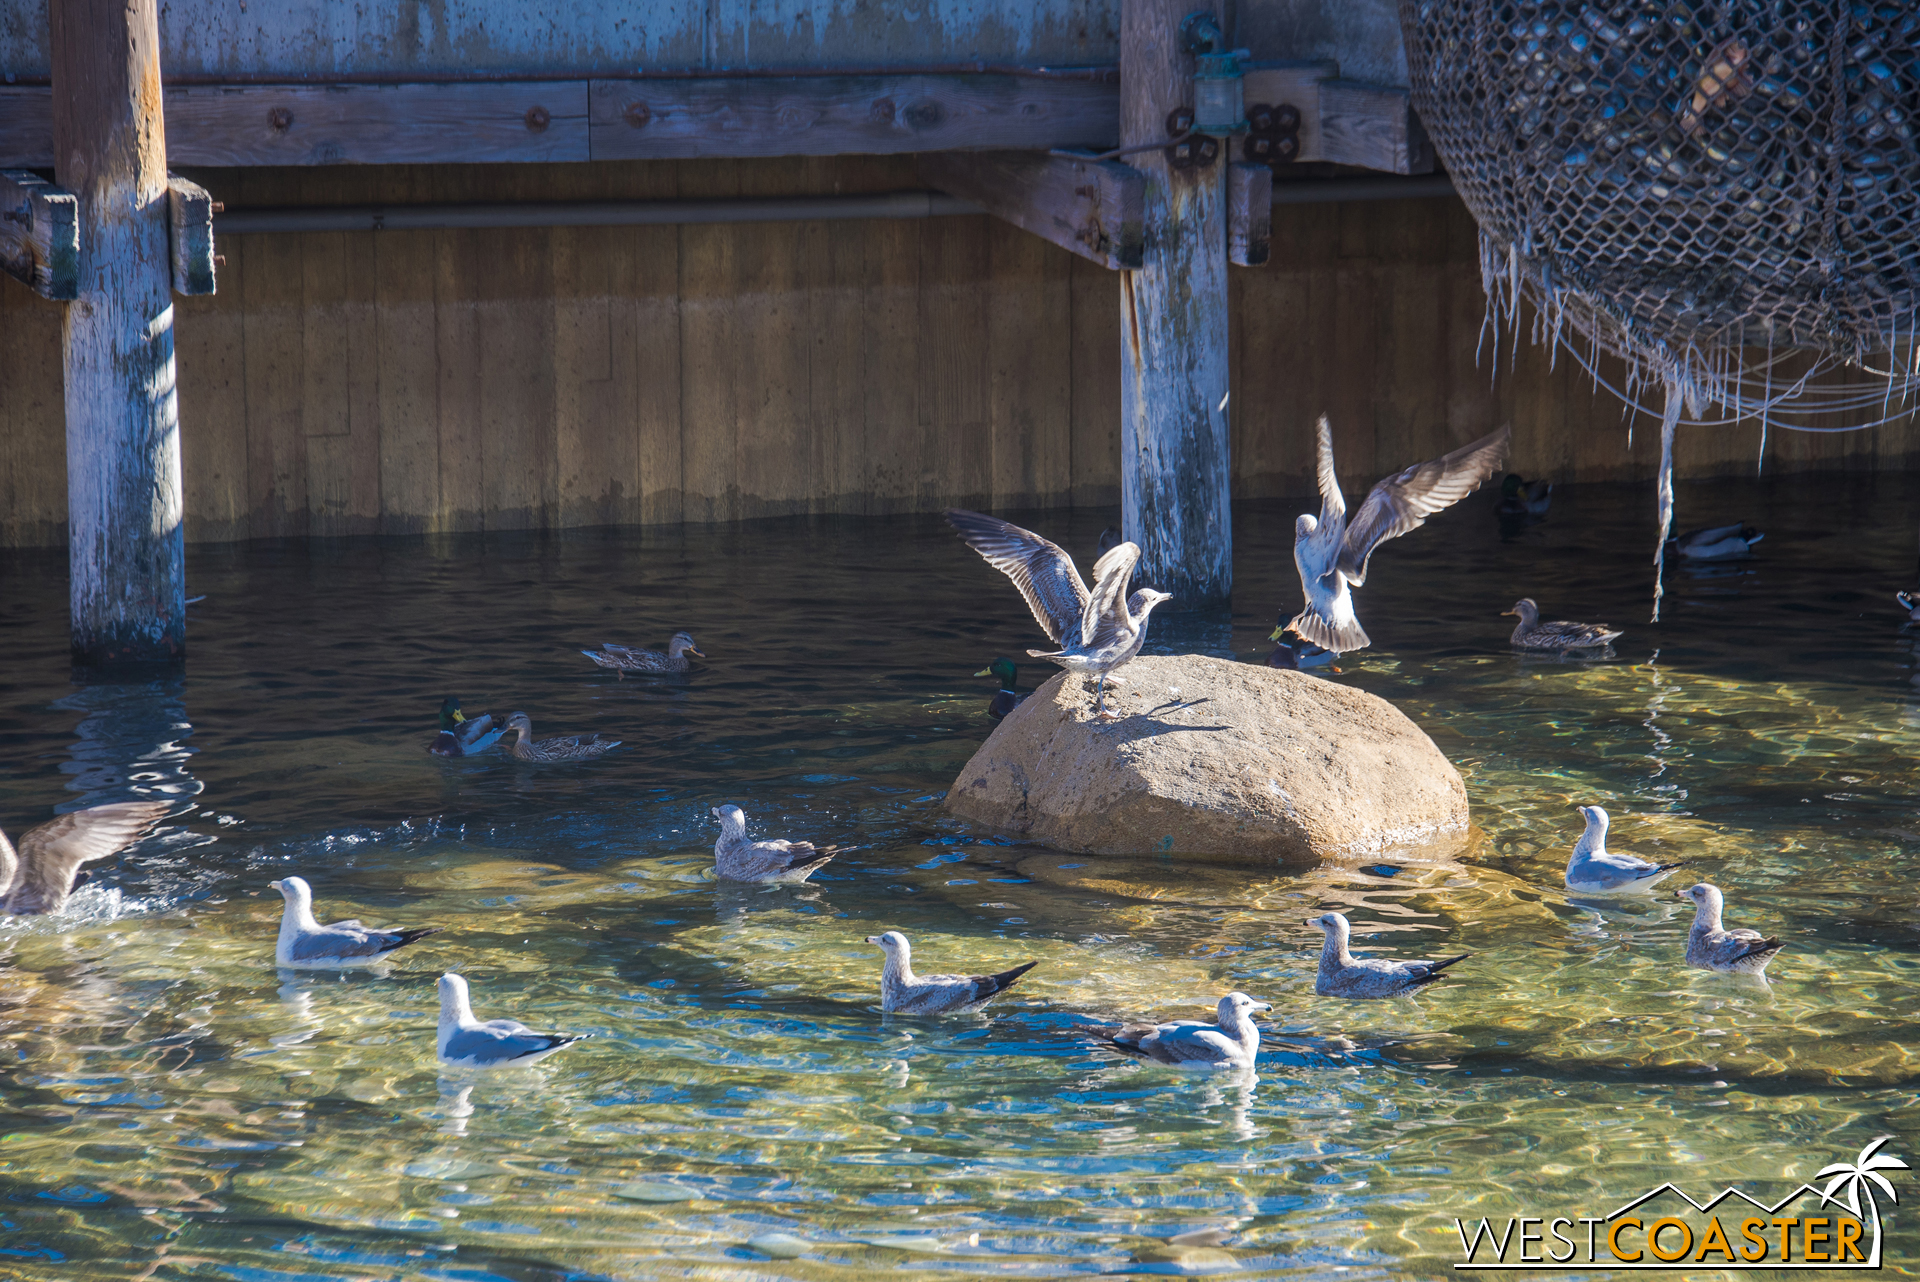 Also, these gulls were having a bread battle over in the water by Pacific Wharf.  That's what happen when you tread on bird turf.